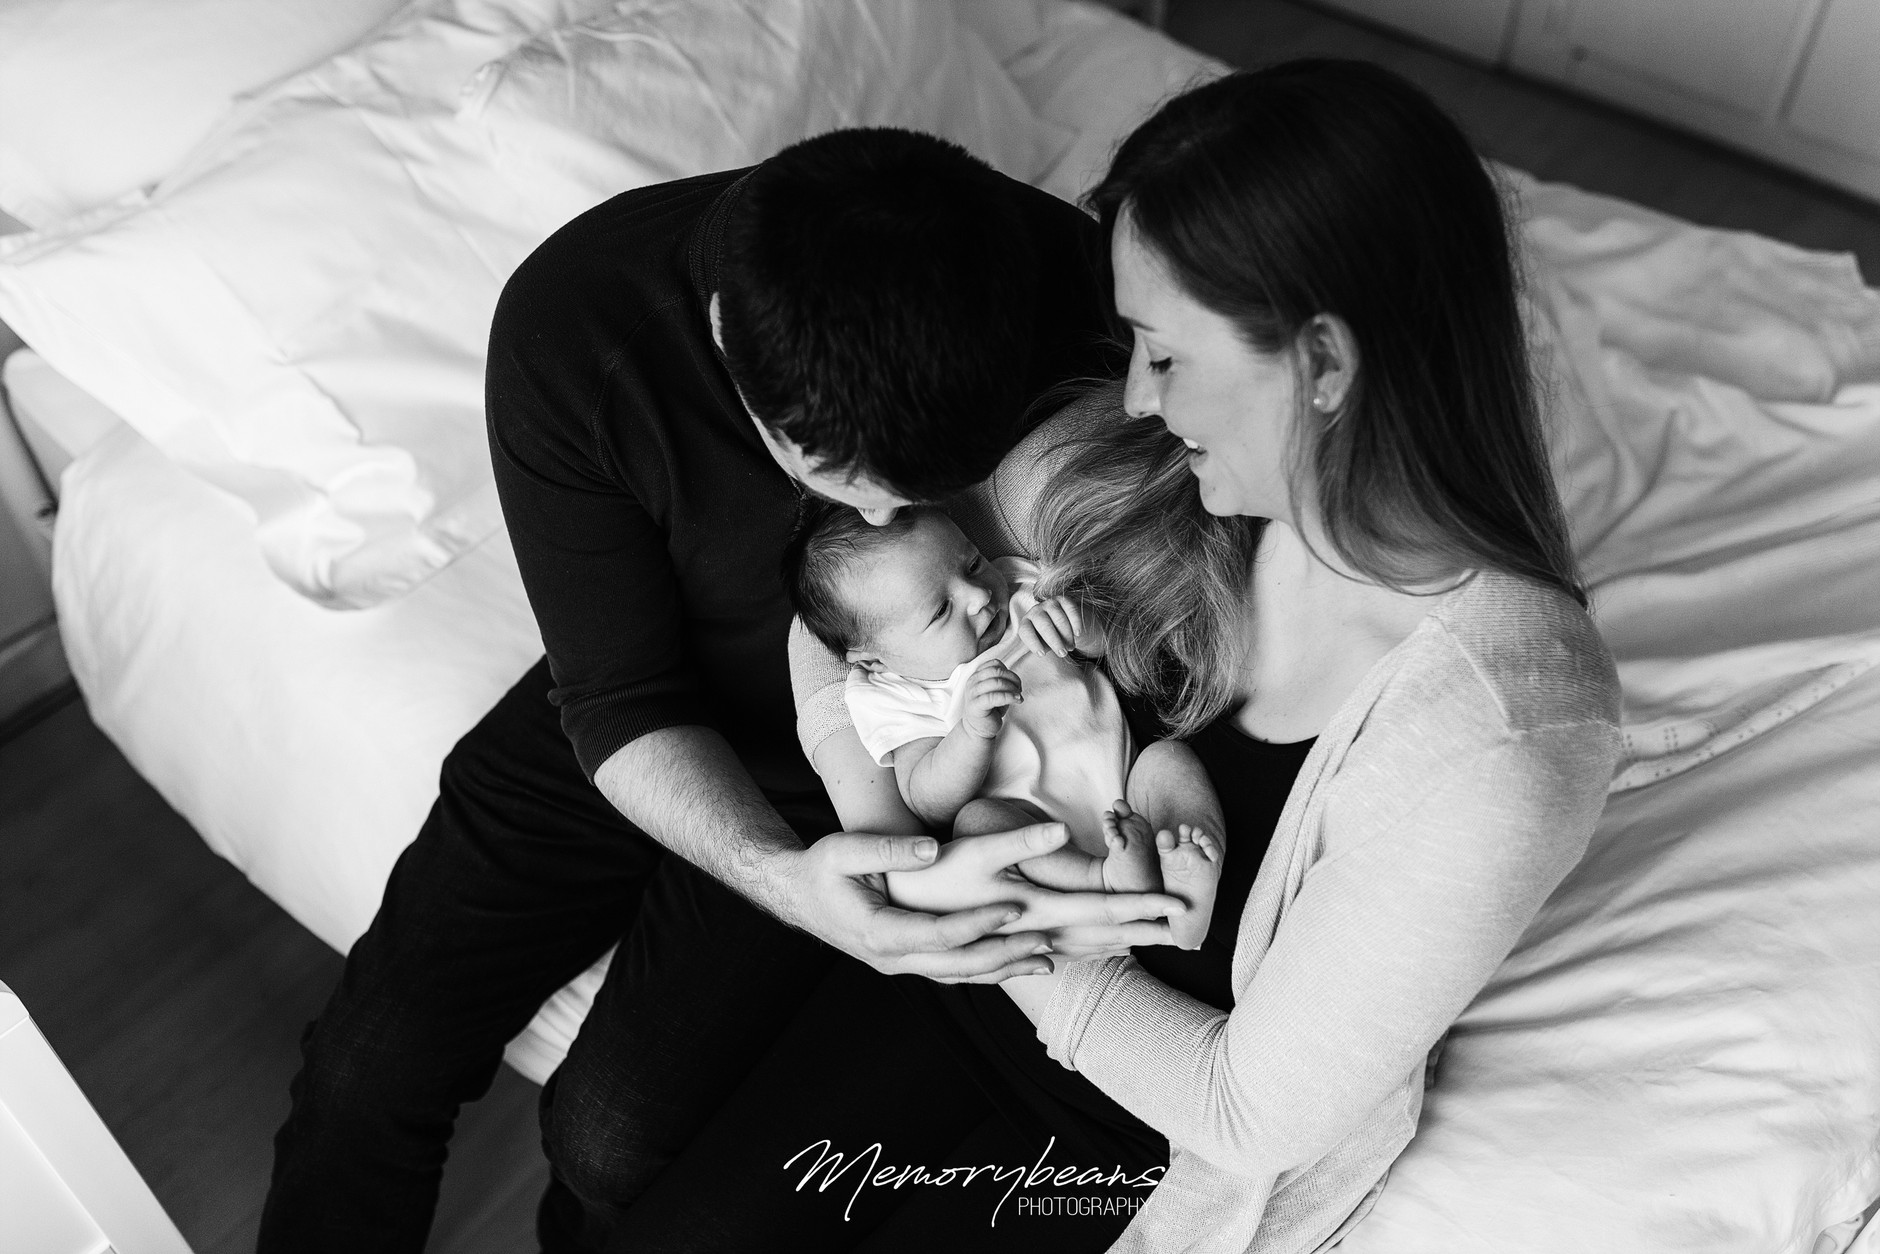 Black & White Photograph of new parents holding smiling baby at home